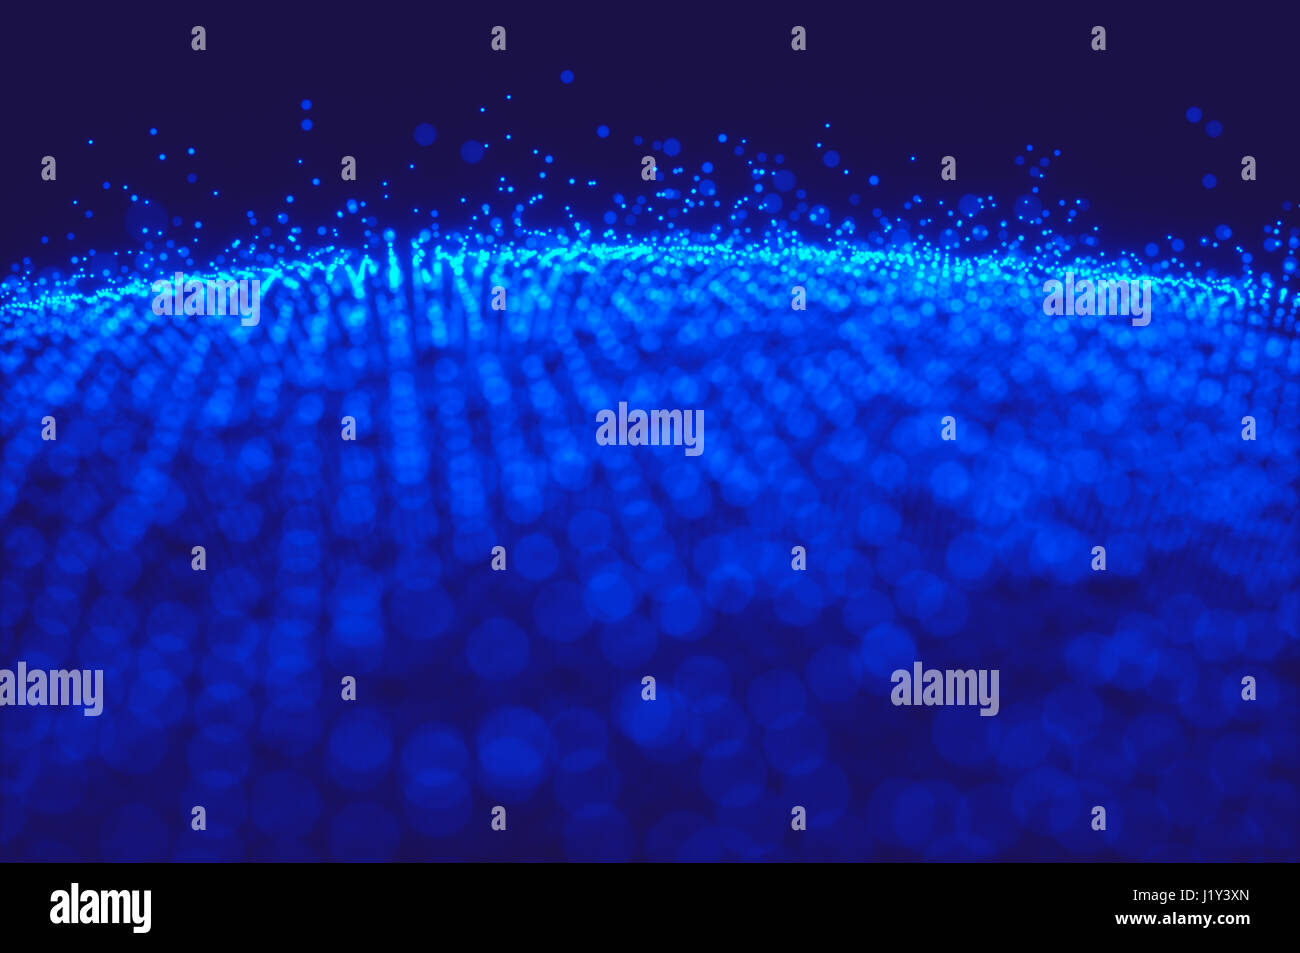 3D illustration of sphere-shaped dots representing the data circulating on planet earth. - Stock Image